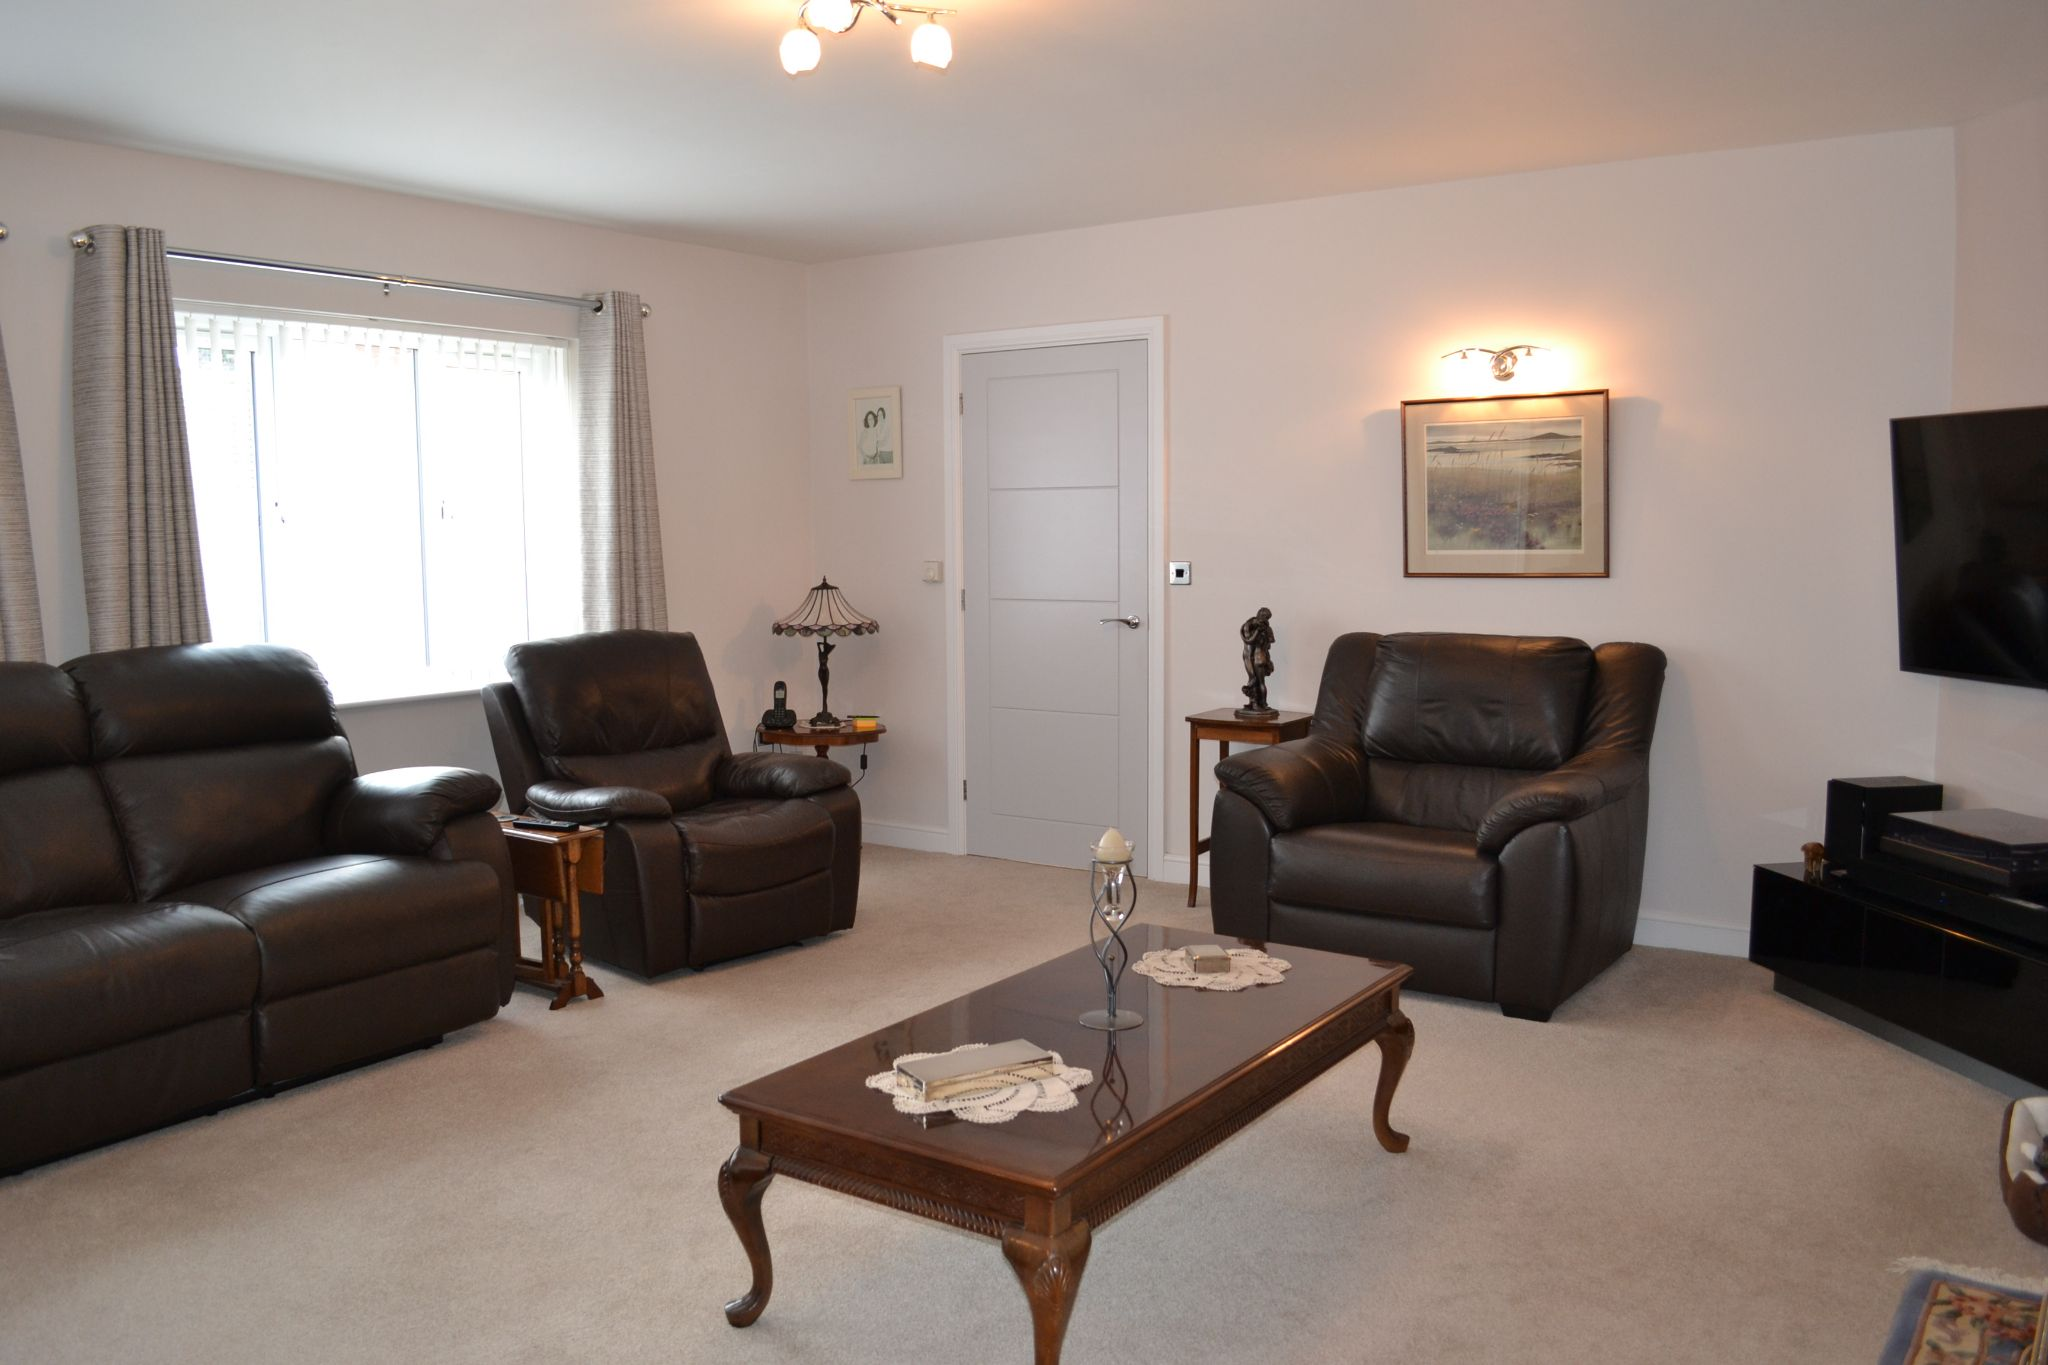 4 bedroom detached bungalow For Sale in Castletown - Property photograph